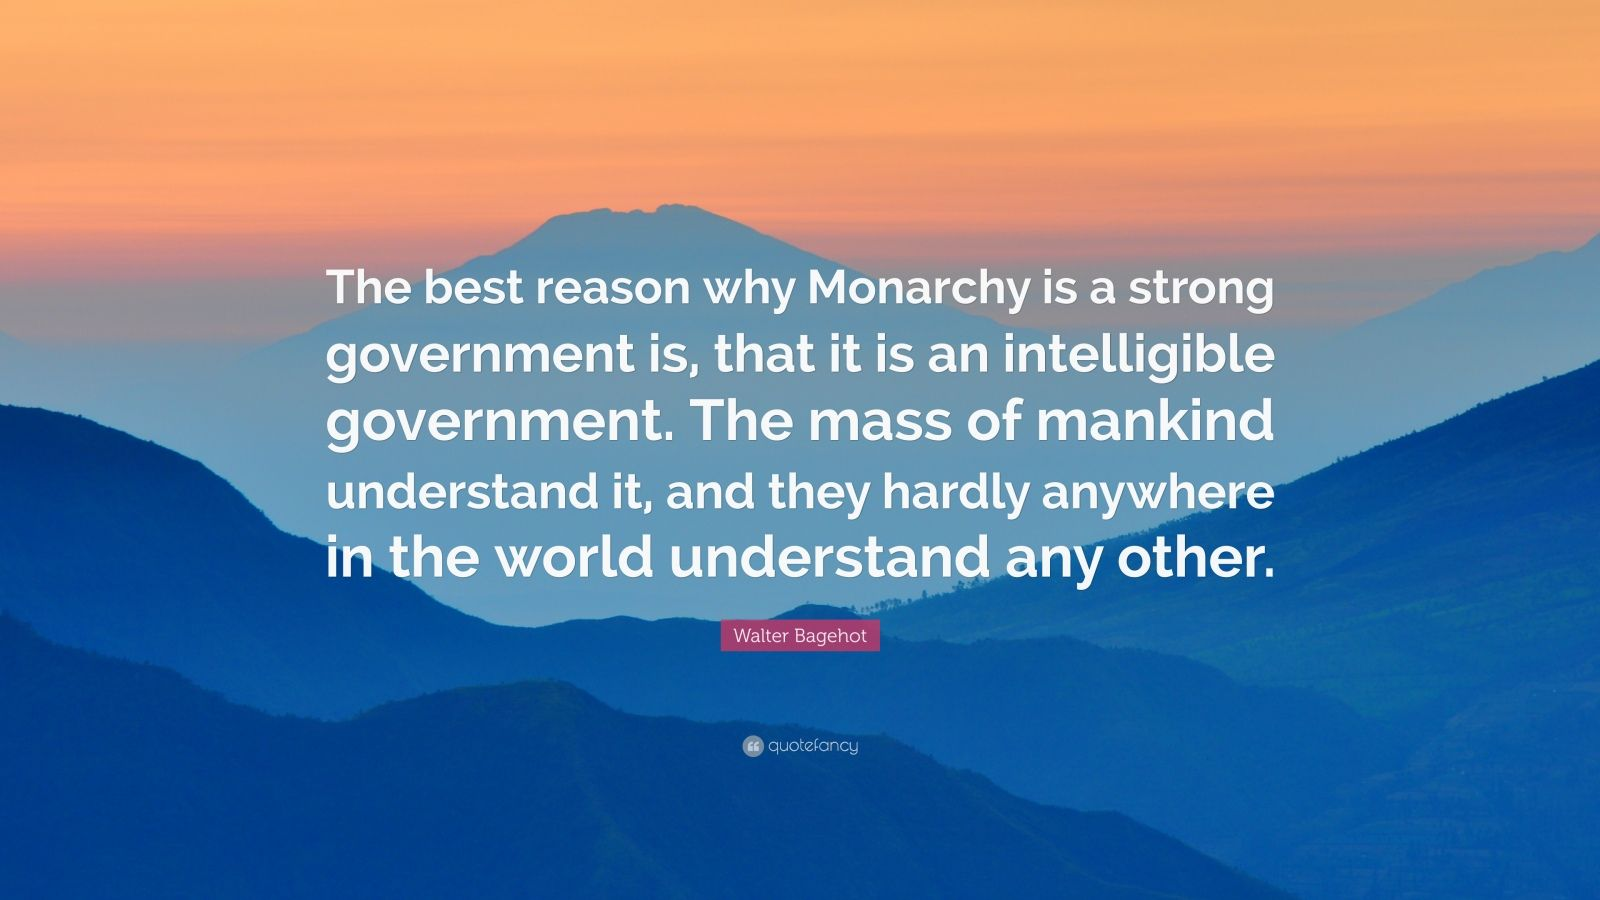 """Walter Bagehot Quote: """"The best reason why Monarchy is a strong government is, that it is an intelligible government. The mass of mankind understand it, and they hardly anywhere in the world understand any other."""""""